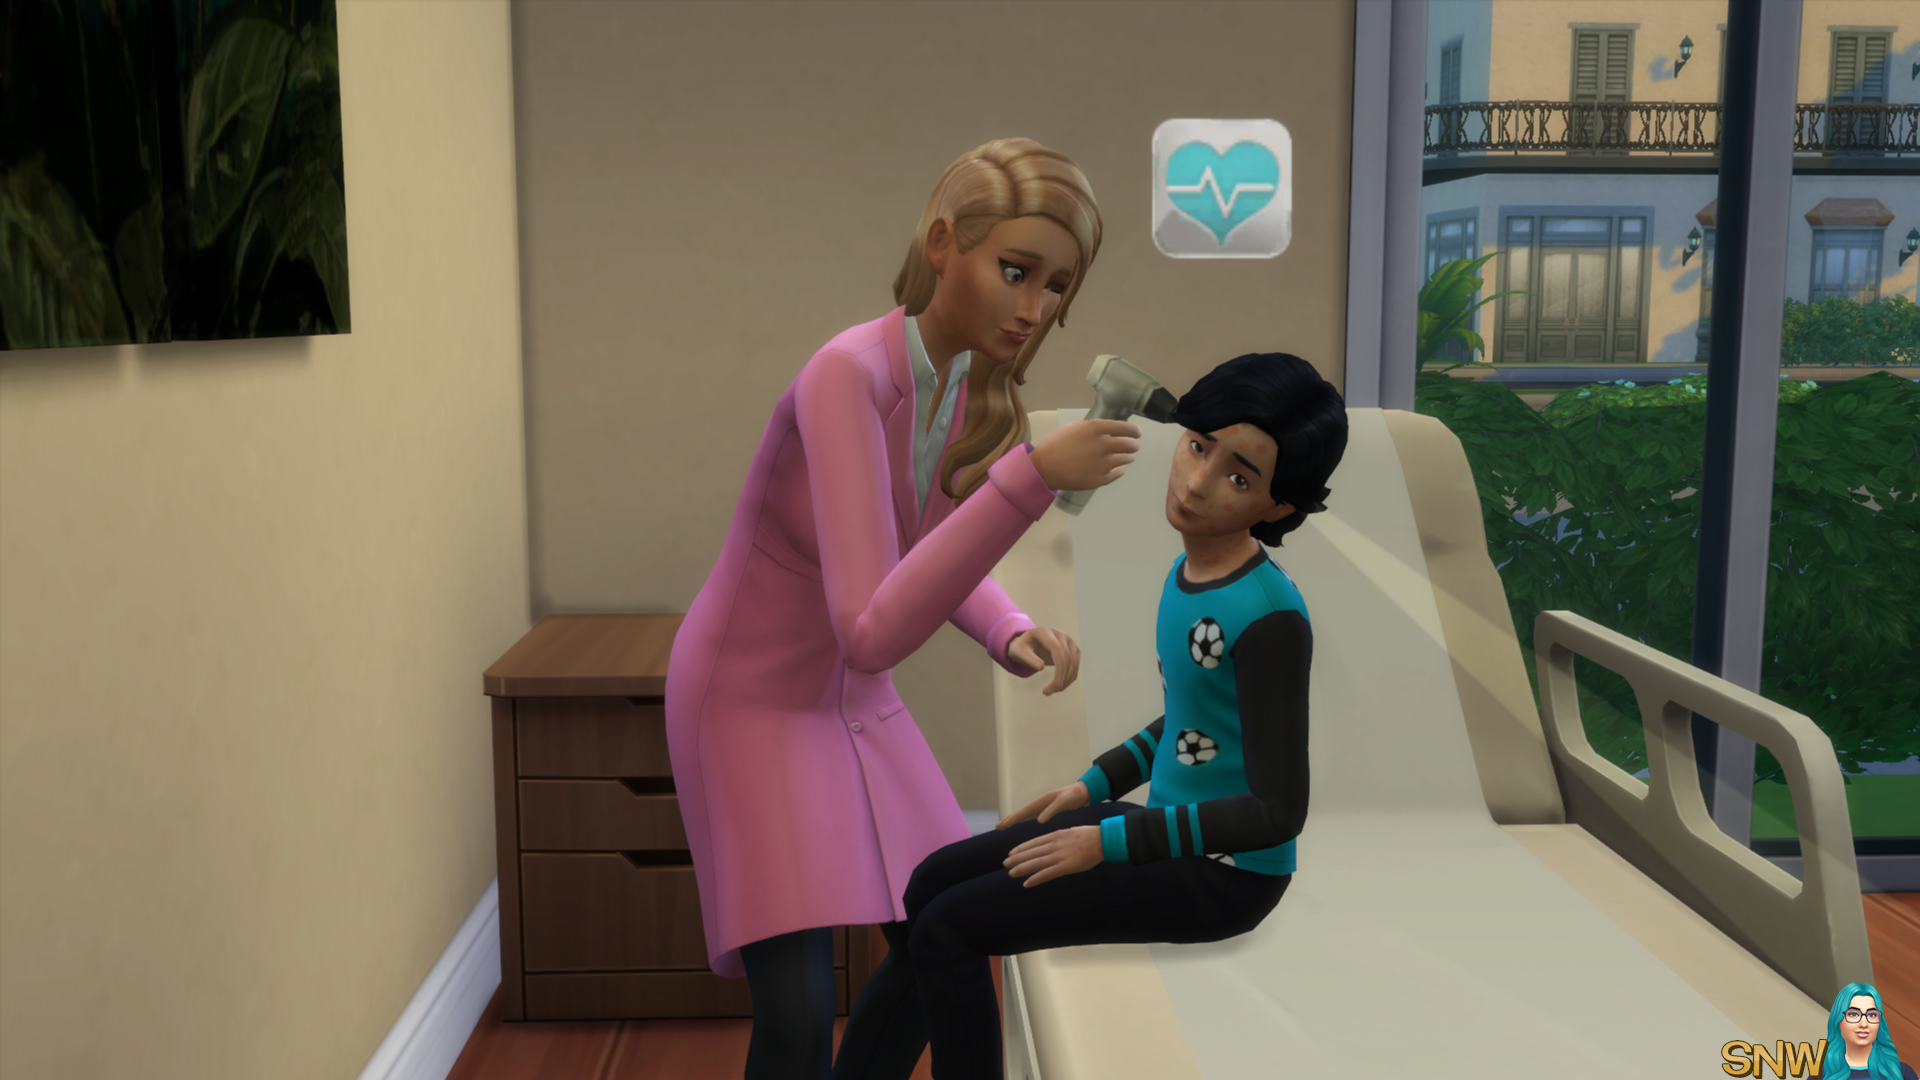 The Sims 4 Get To Work Hands On Preview Snw